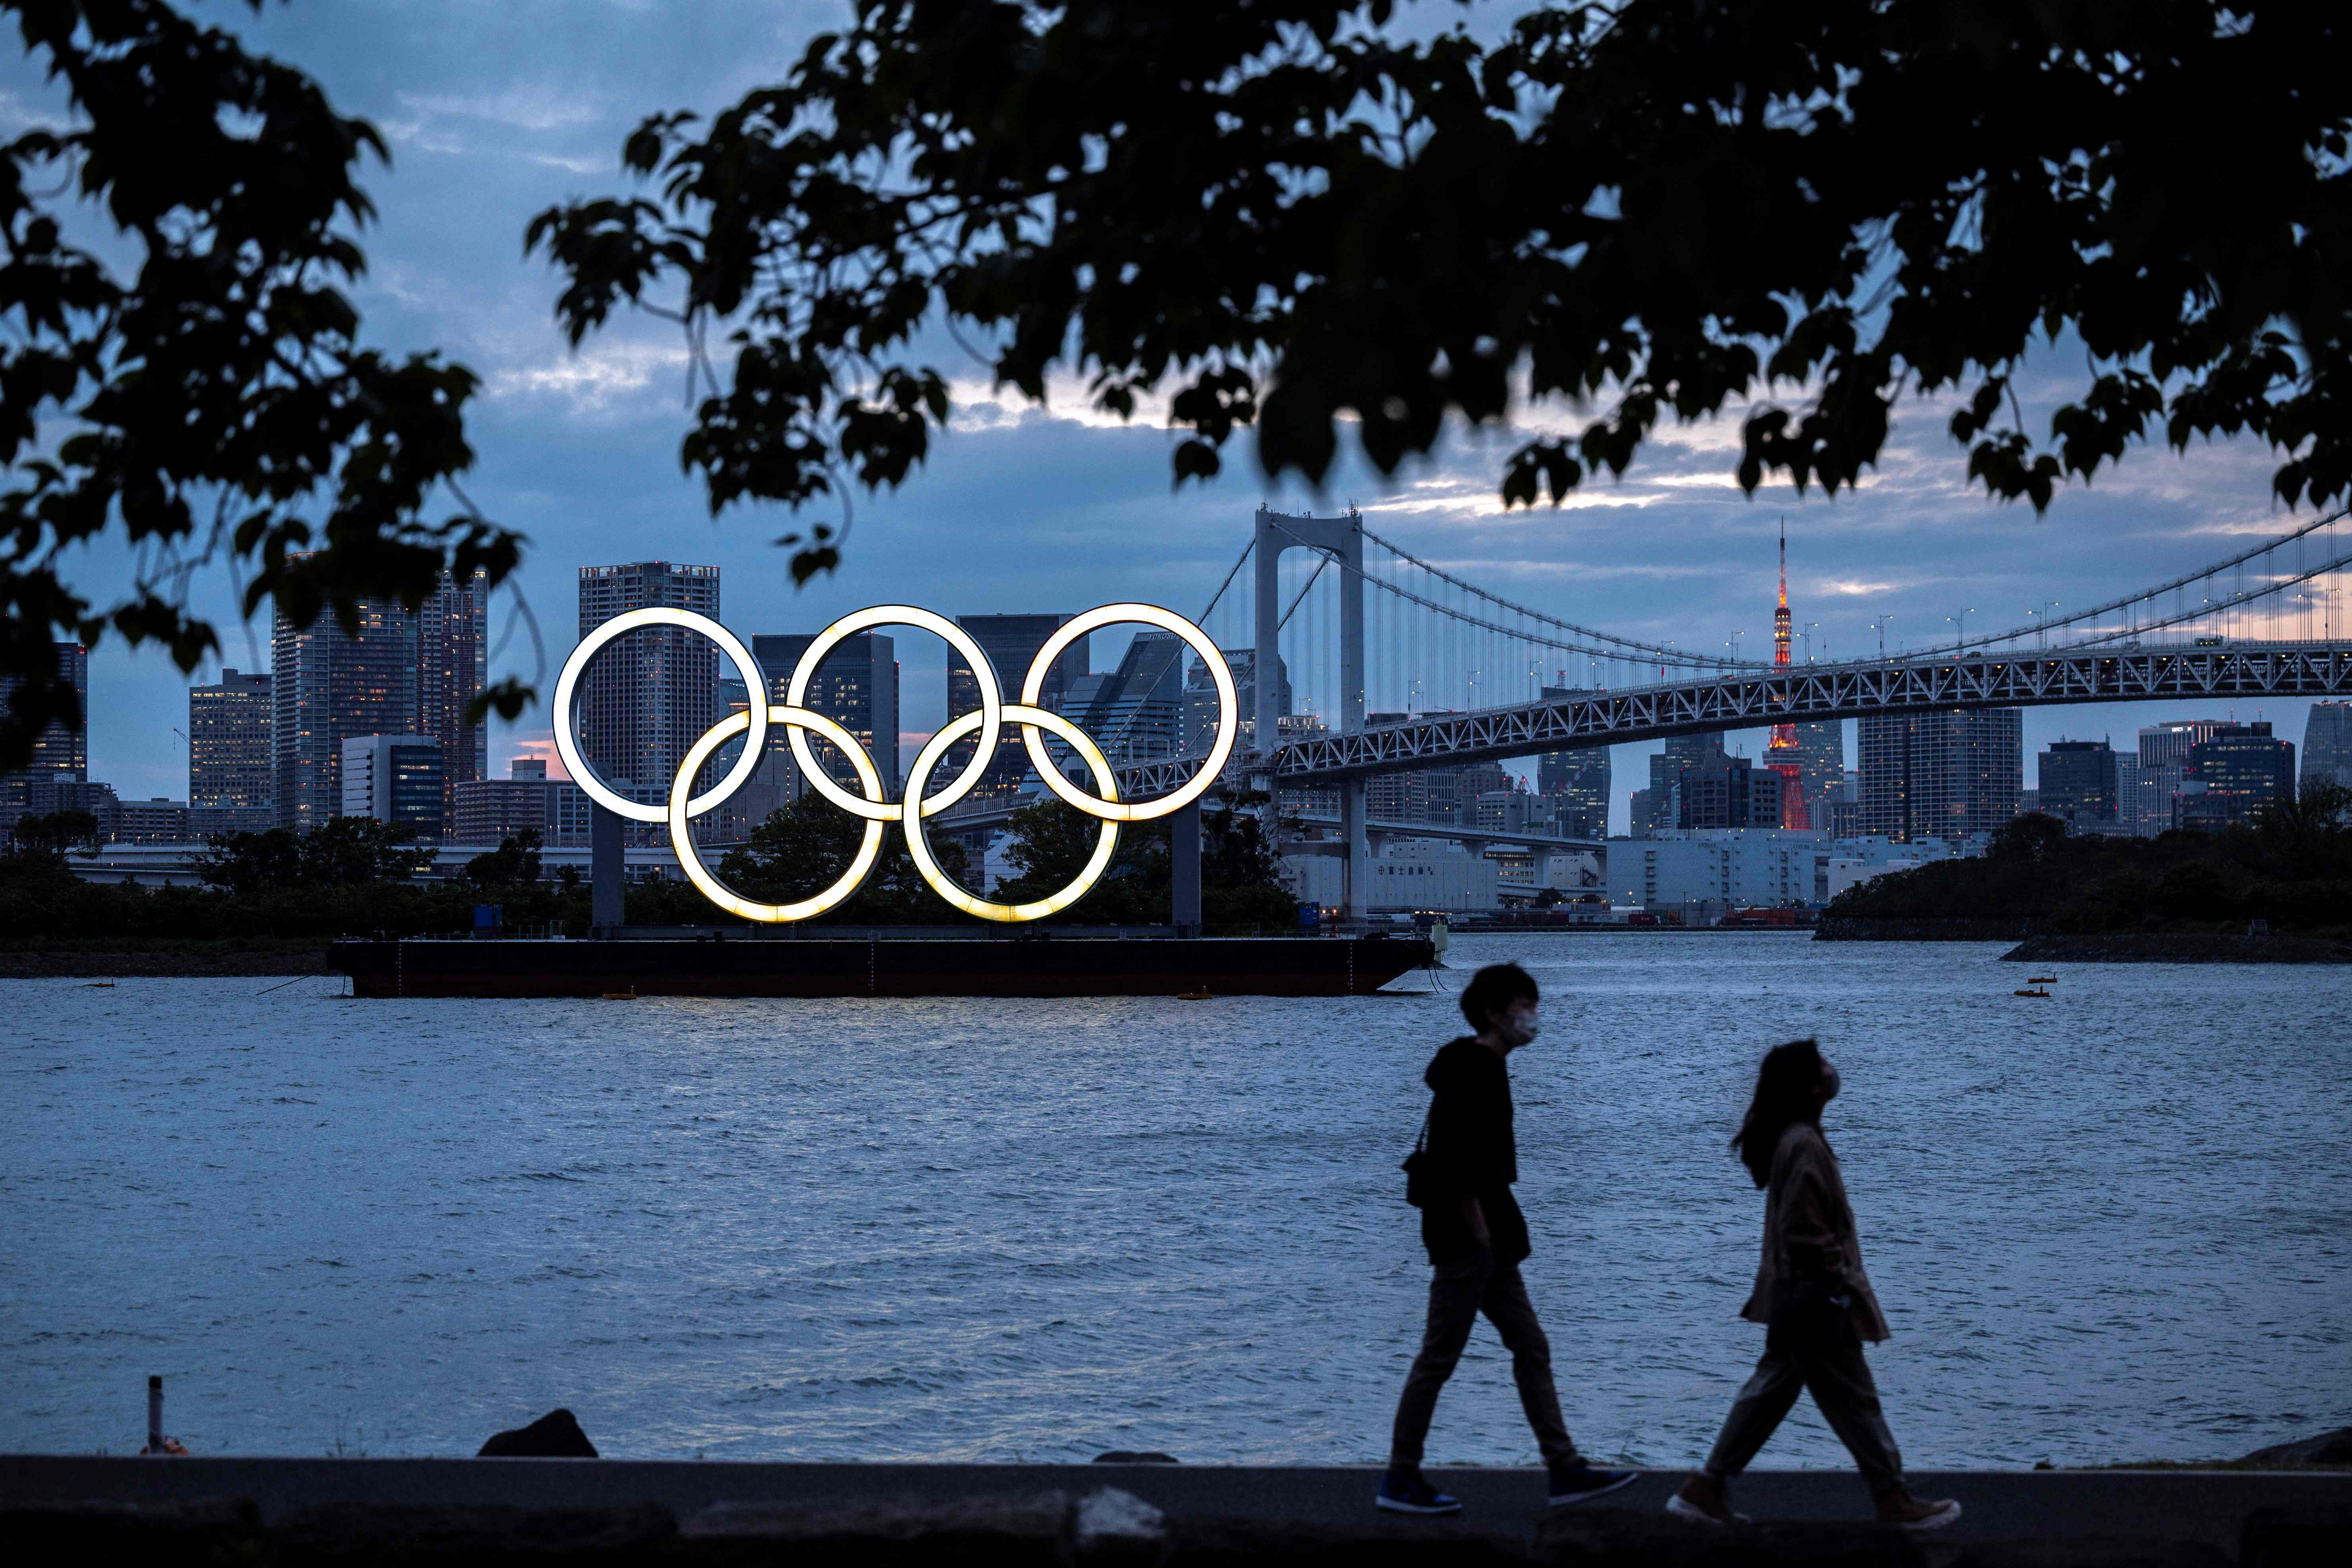 When do the 2021 Olympics start? What new events will there be in Tokyo? Here's what you need to know about Summer Olympics